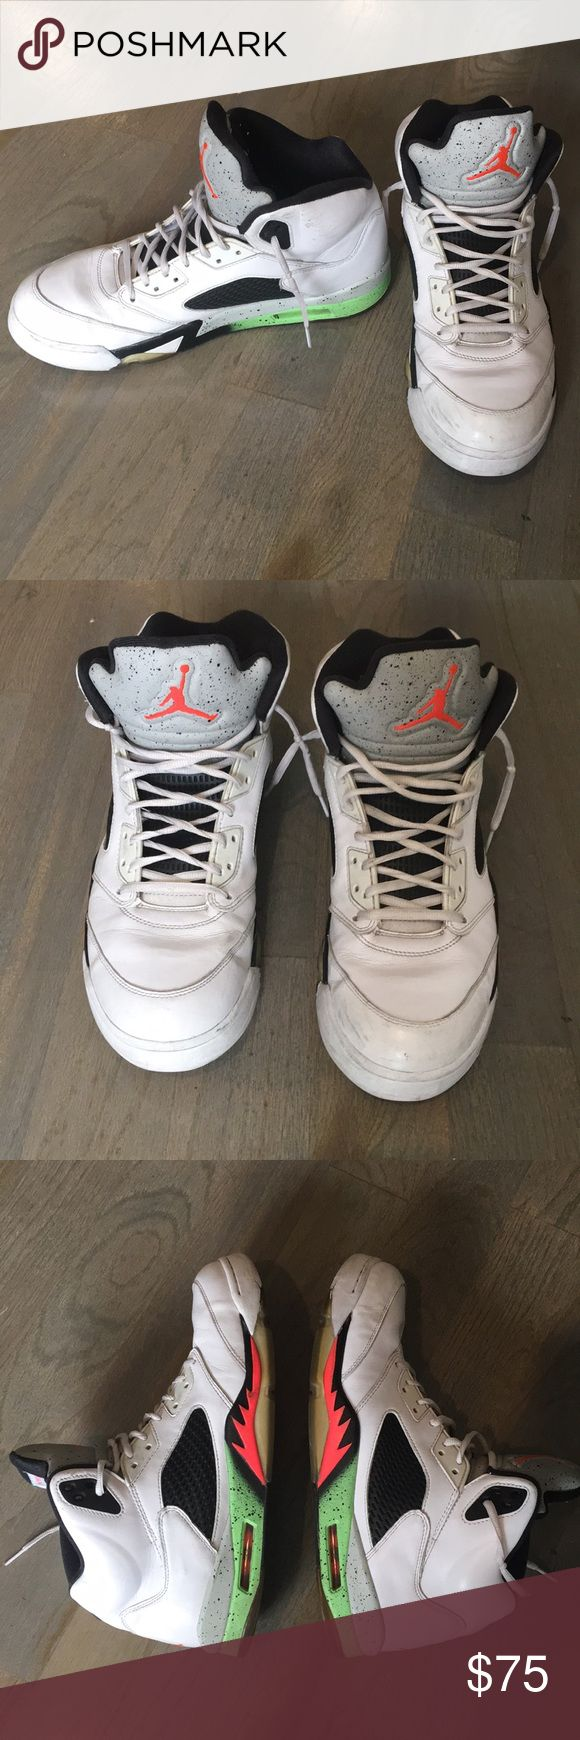 """Men's Jordan 5 """"Pro Stars"""" (size 13) Men's Jordan 5s. Used, see pics for condition. Bottoms will be cleaned before I send out. I bought these from someone else and they don't fit me as well. I was told they were touched up before by the toe box to cover up scuffs. Still look great! I don't have the box or lace locks. Air Jordan Shoes"""